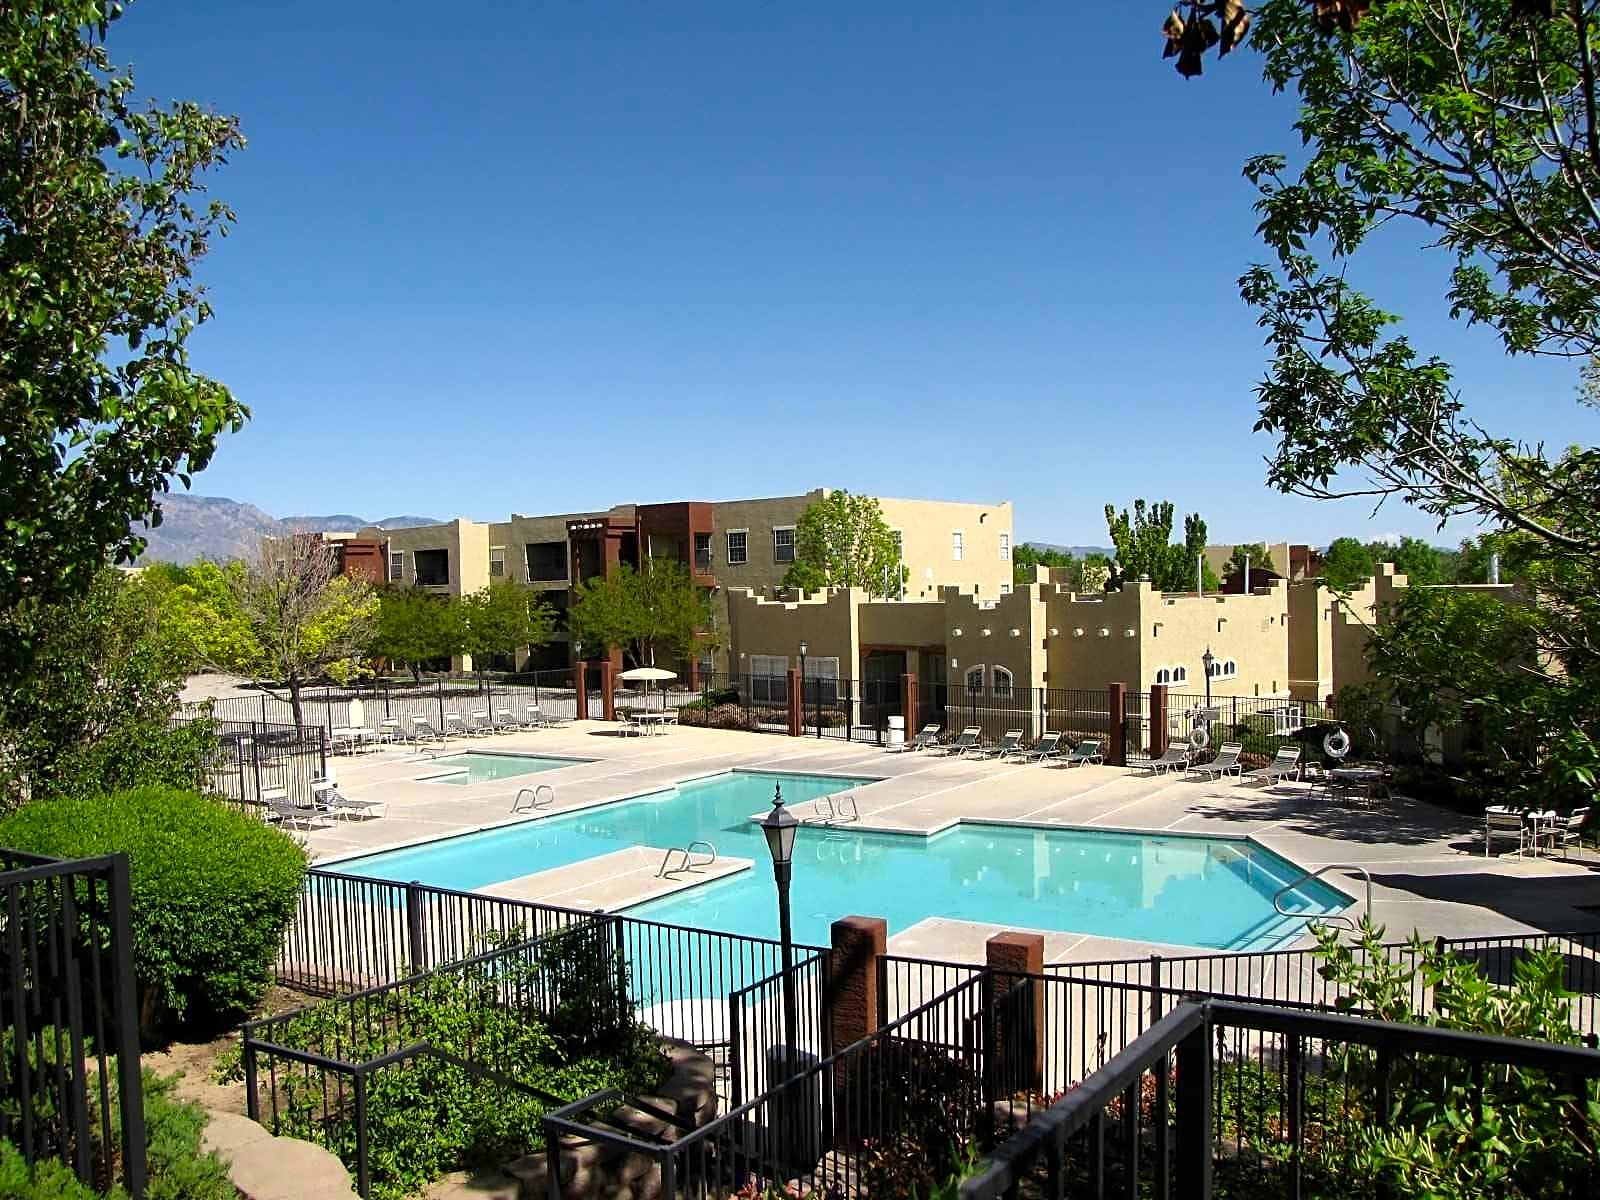 Photo: Albuquerque Apartment for Rent - $515.00 / month; Studio & 1 Ba